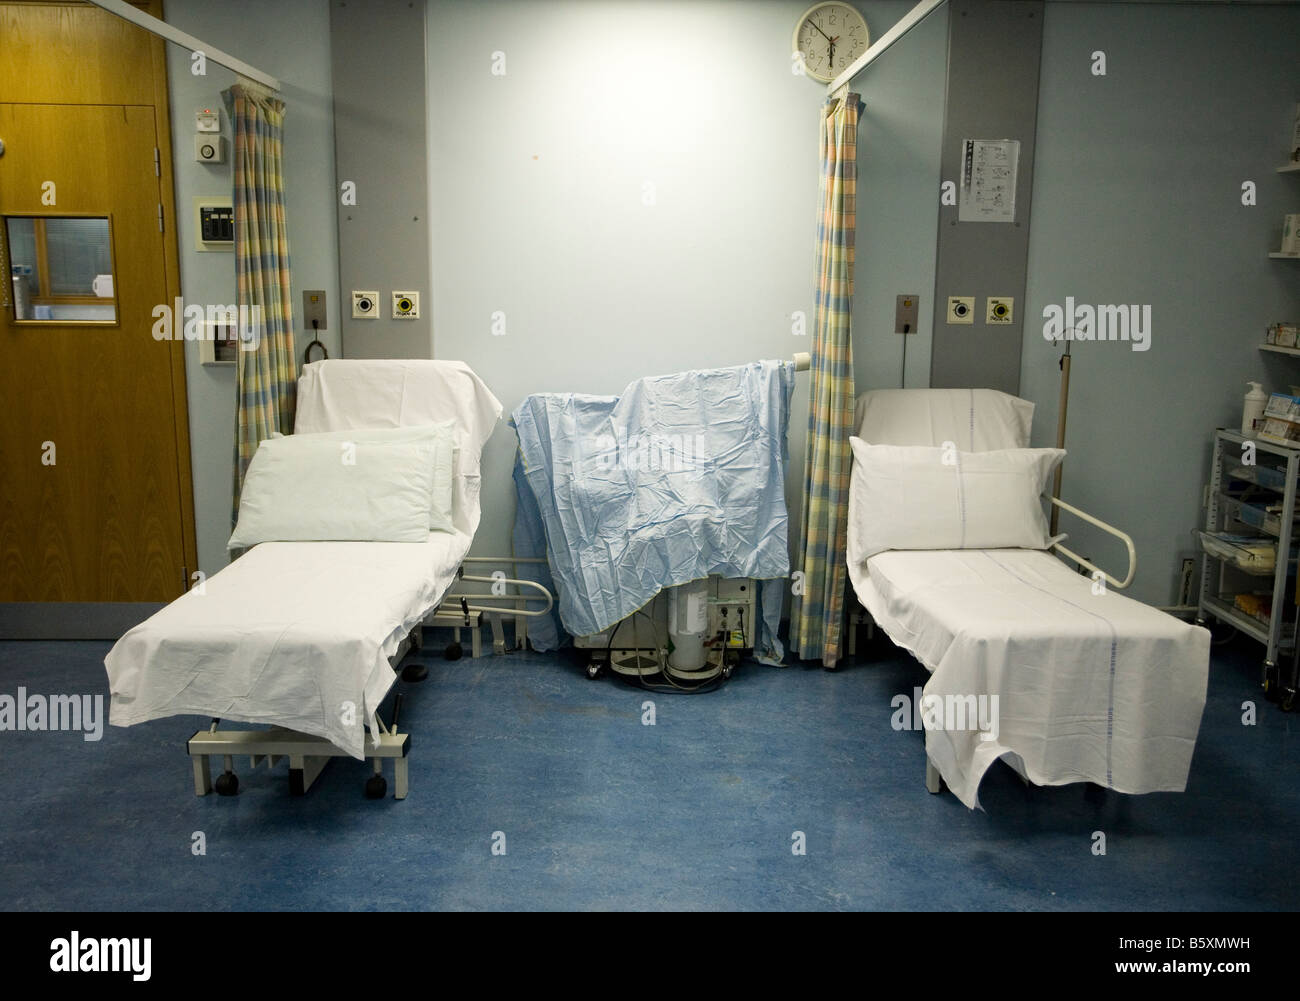 Empty beds at an NHS hospital in UK - Stock Image